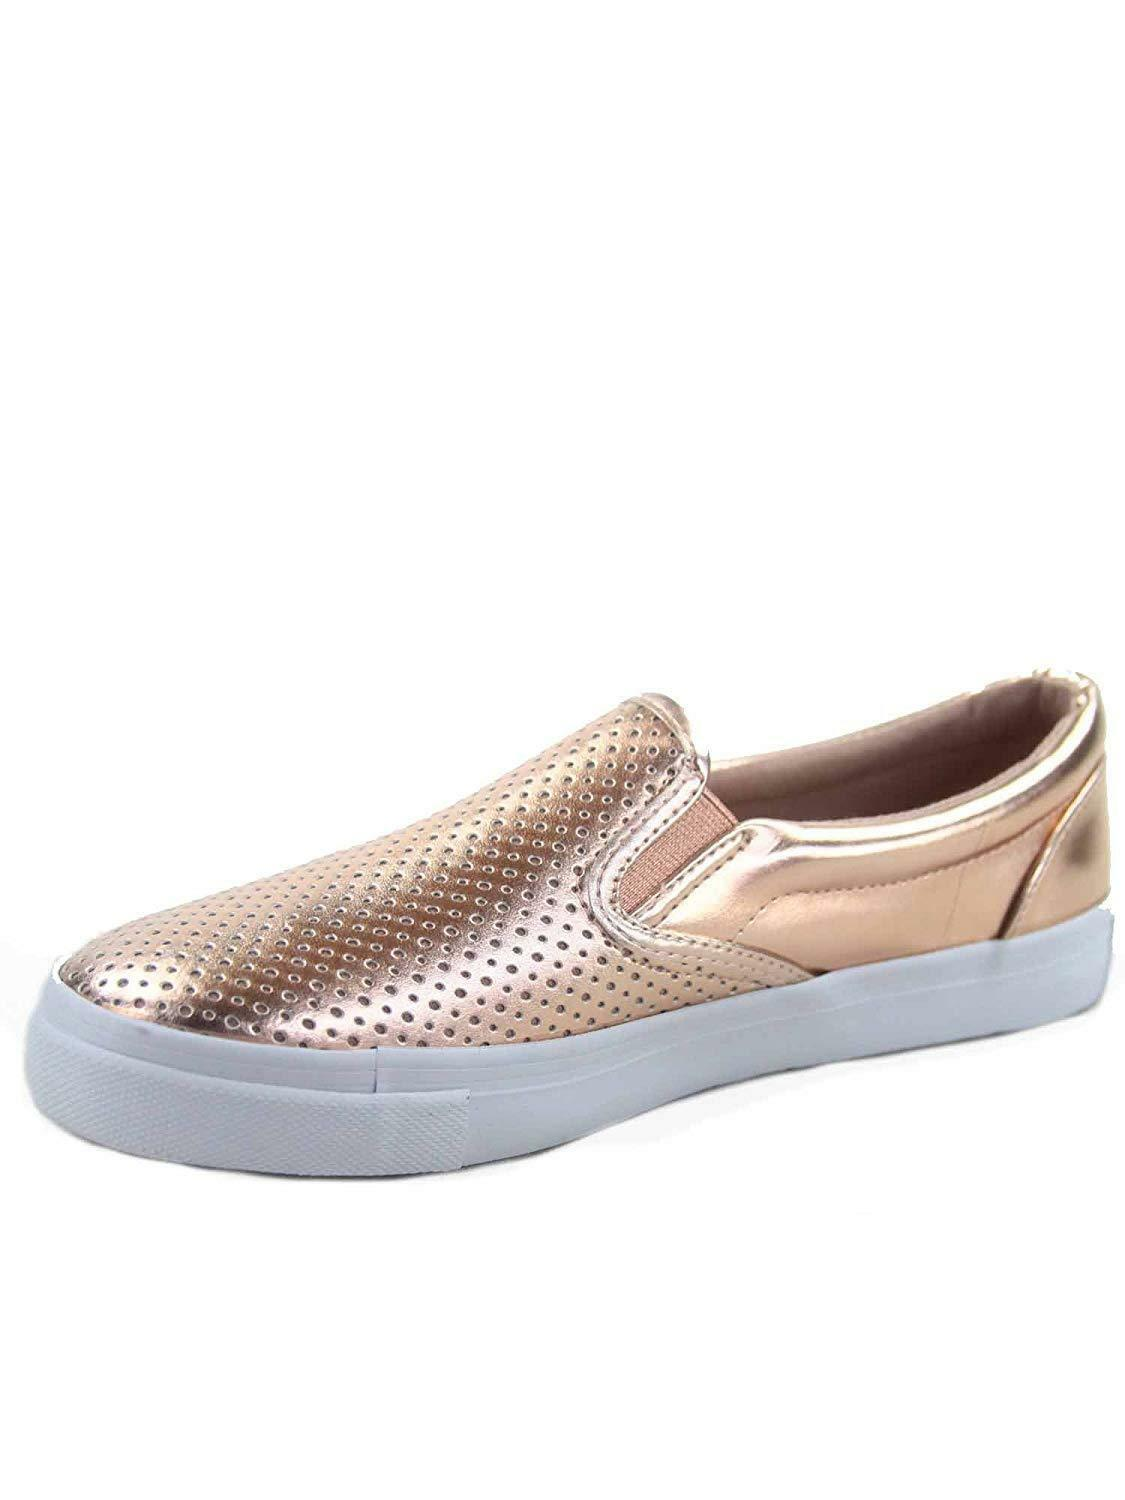 Soda Tracer-S Women's Cute Perforated Slip On Flat Round Toe Sneaker Shoes image 4